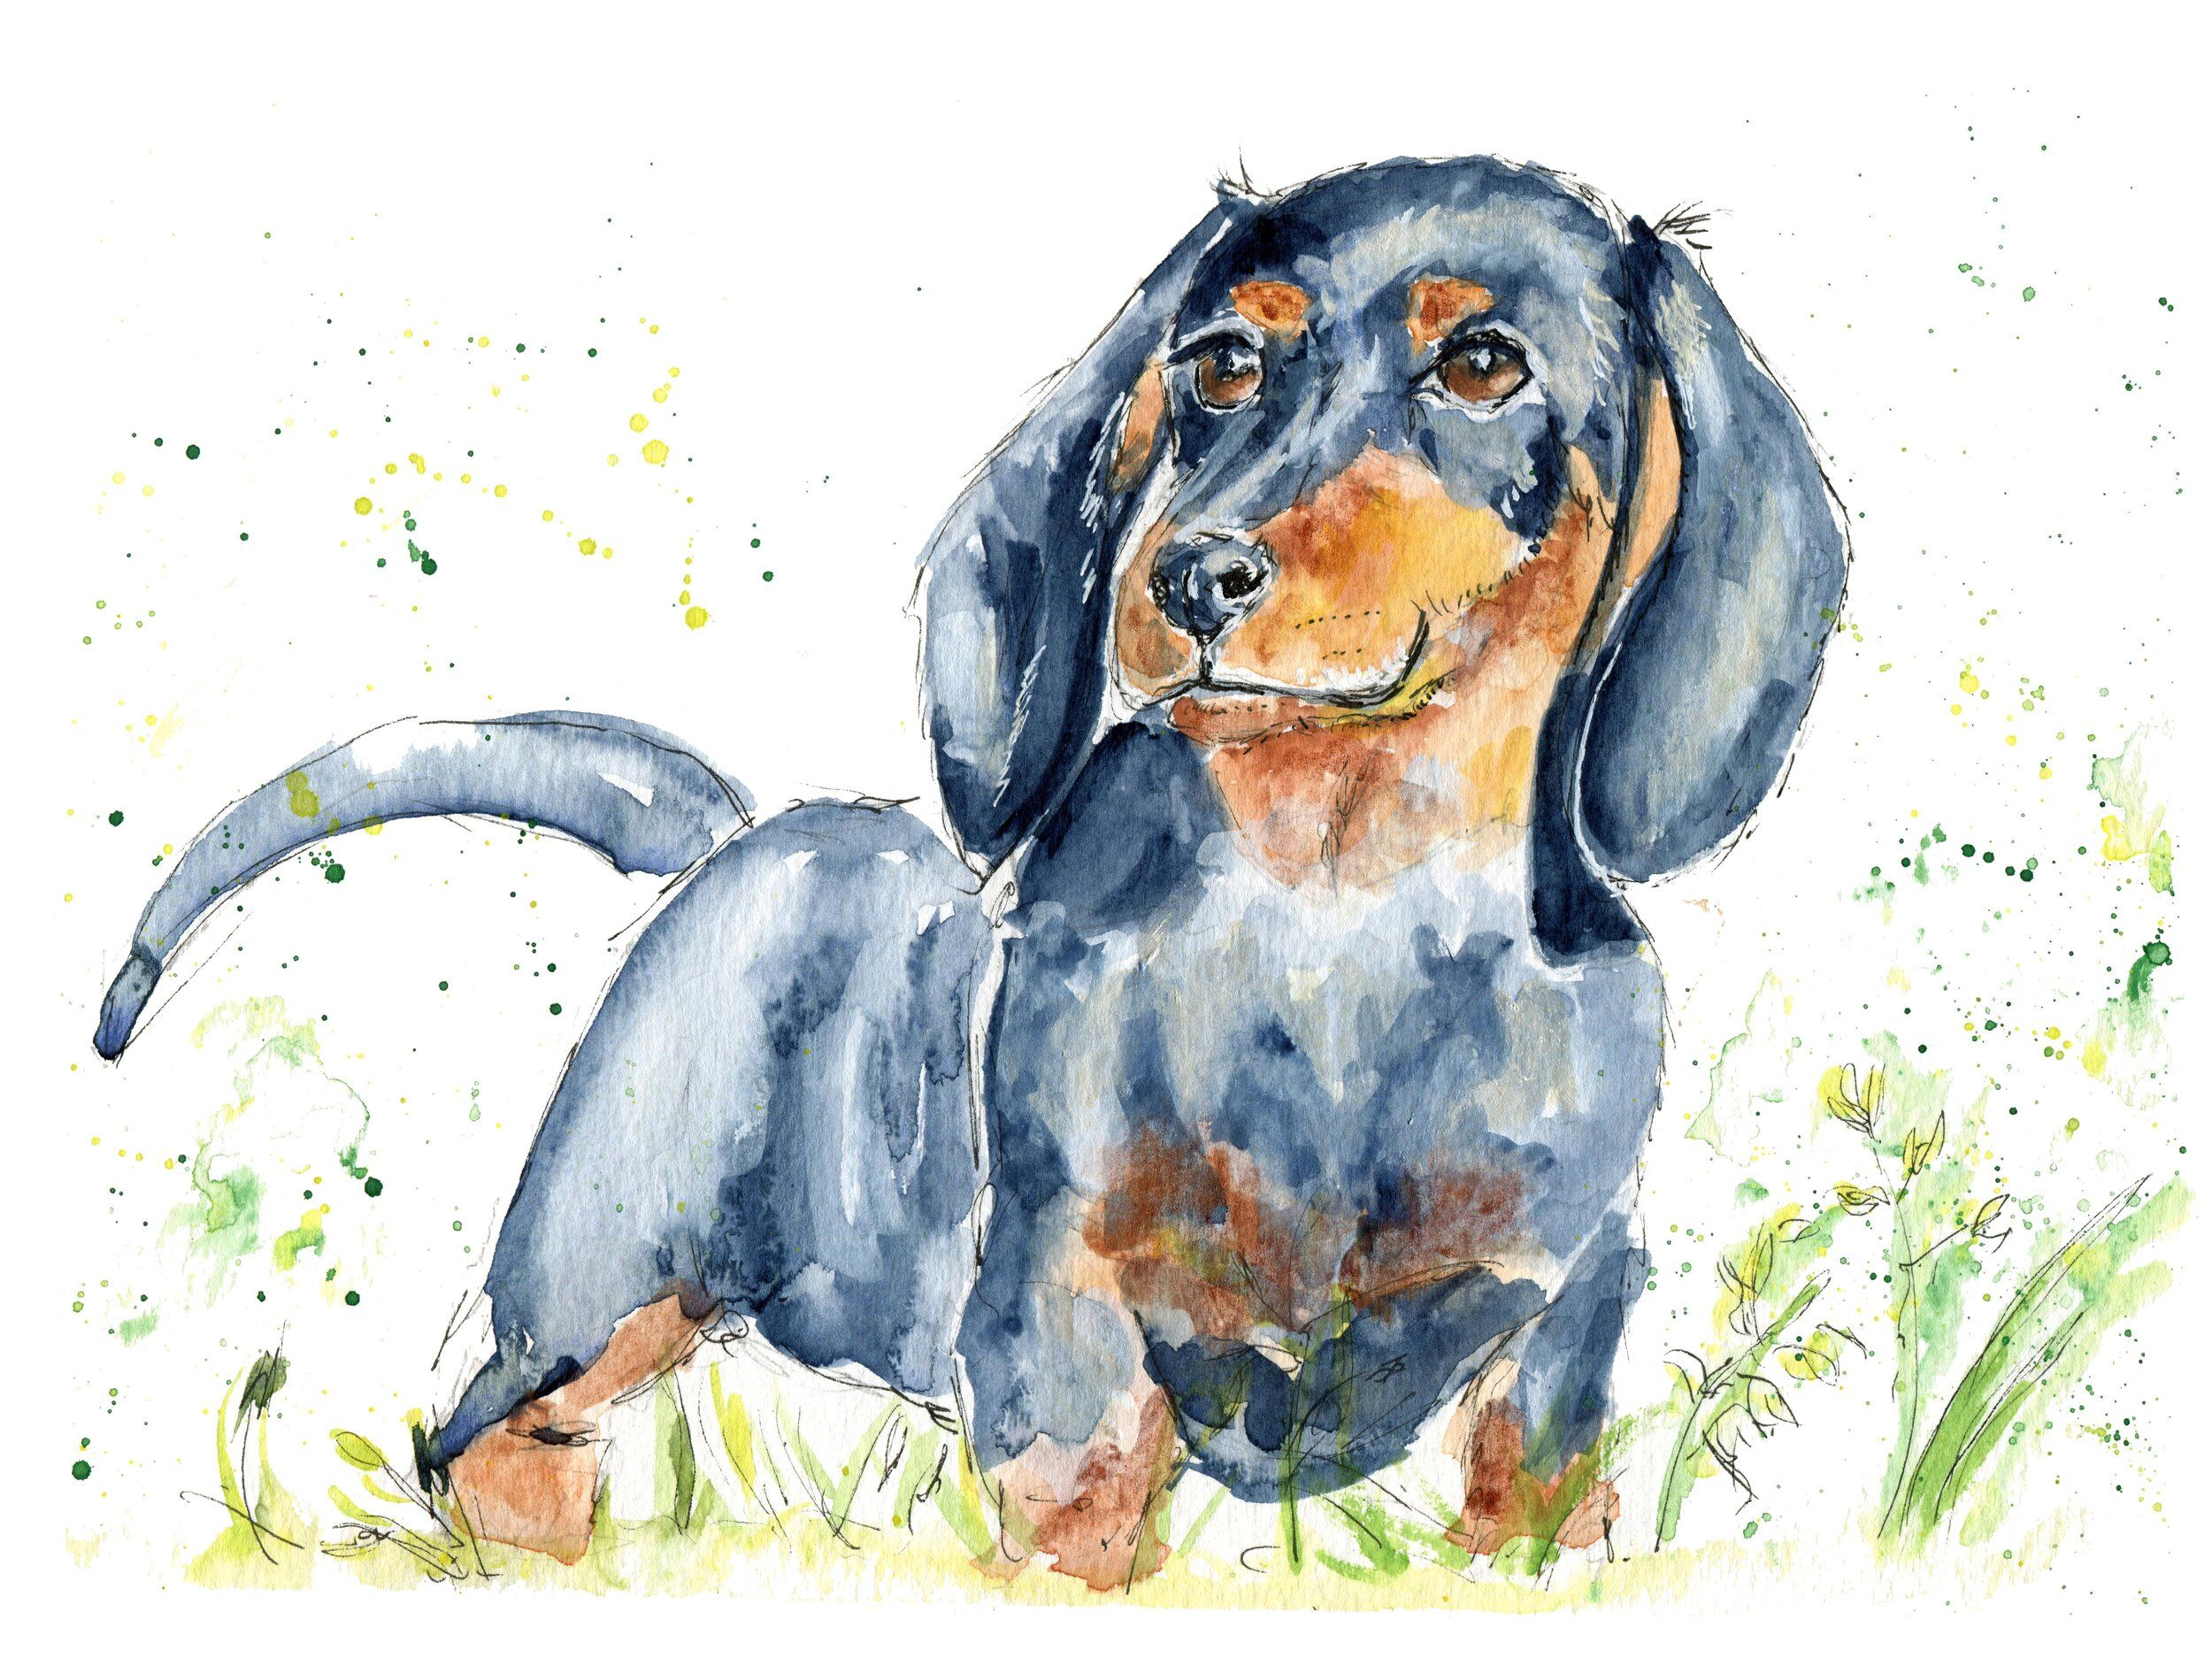 Dachshund Sausage Dog Art Print Sausage Dog Gifts Watercolour Painting For Dog Lovers Nikki Moksha Designs In 2020 Dog Print Art Dog Watercolor Painting Watercolor Dog